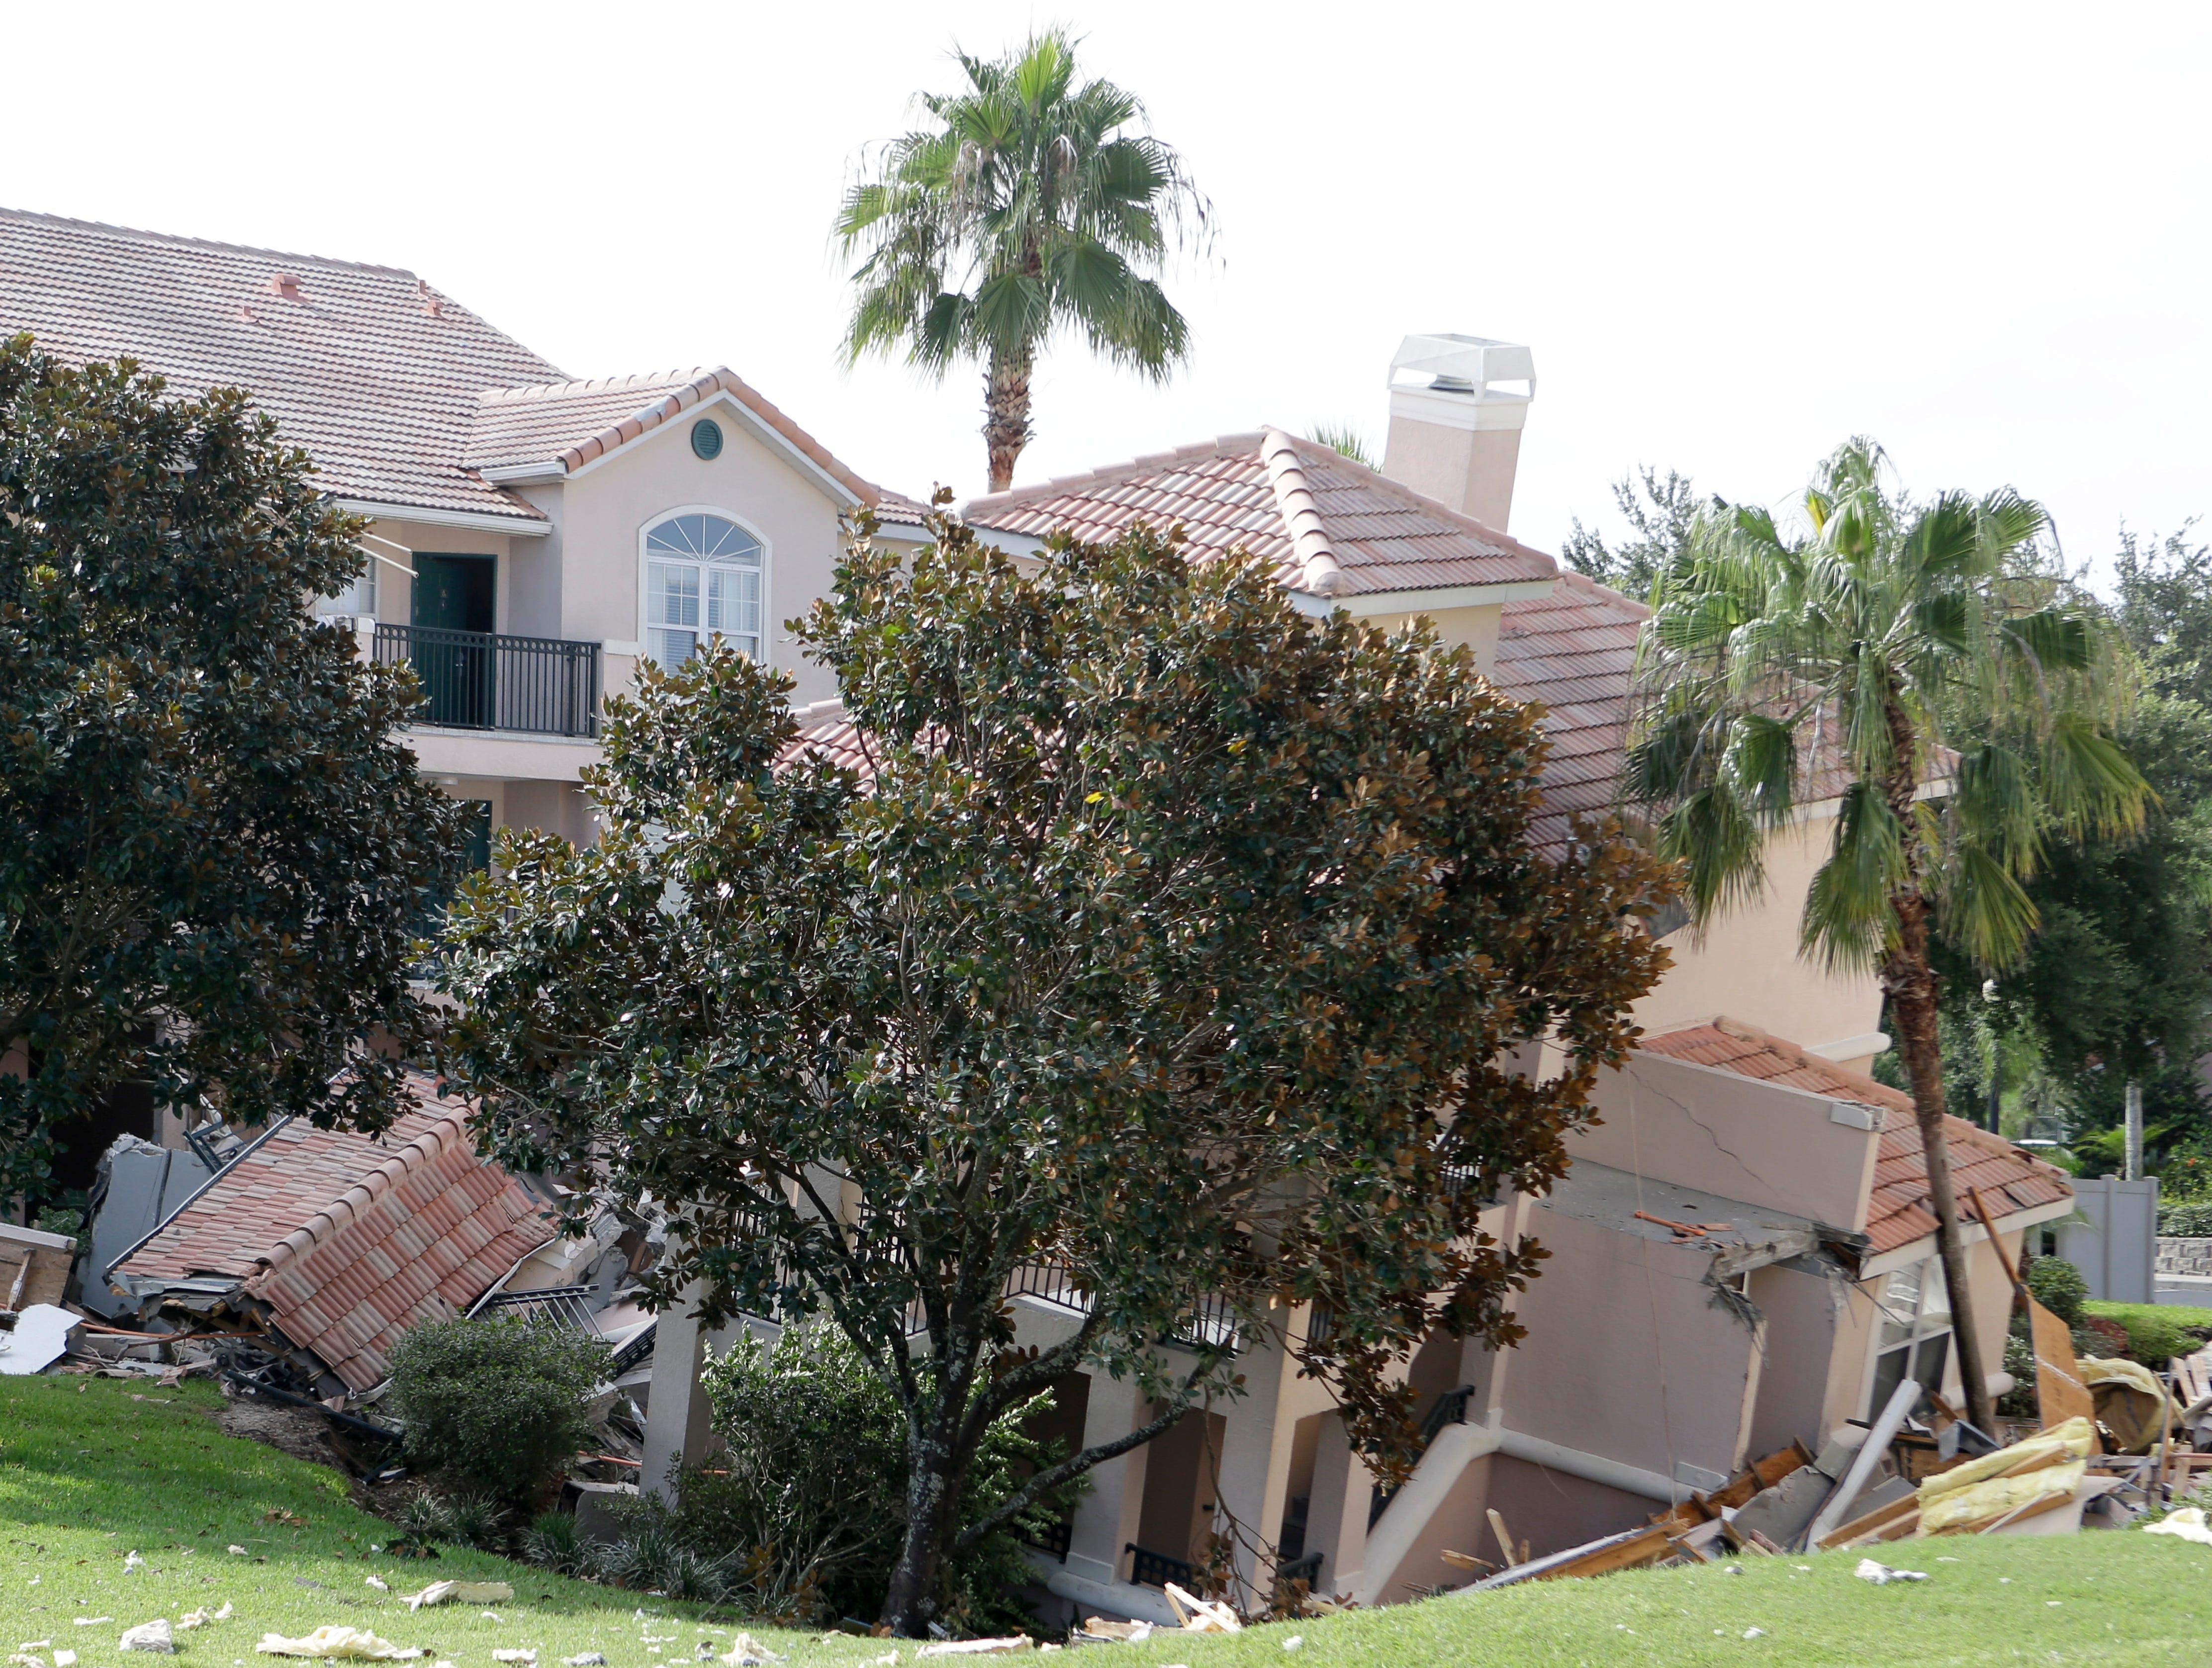 A portion of a building collapses into a sinkhole Aug. 12 in Clermont, Fla. The sinkhole, 40 to 50 feet in diameter, opened up overnight and damaged three buildings at the Summer Bay Resort near Disney World.